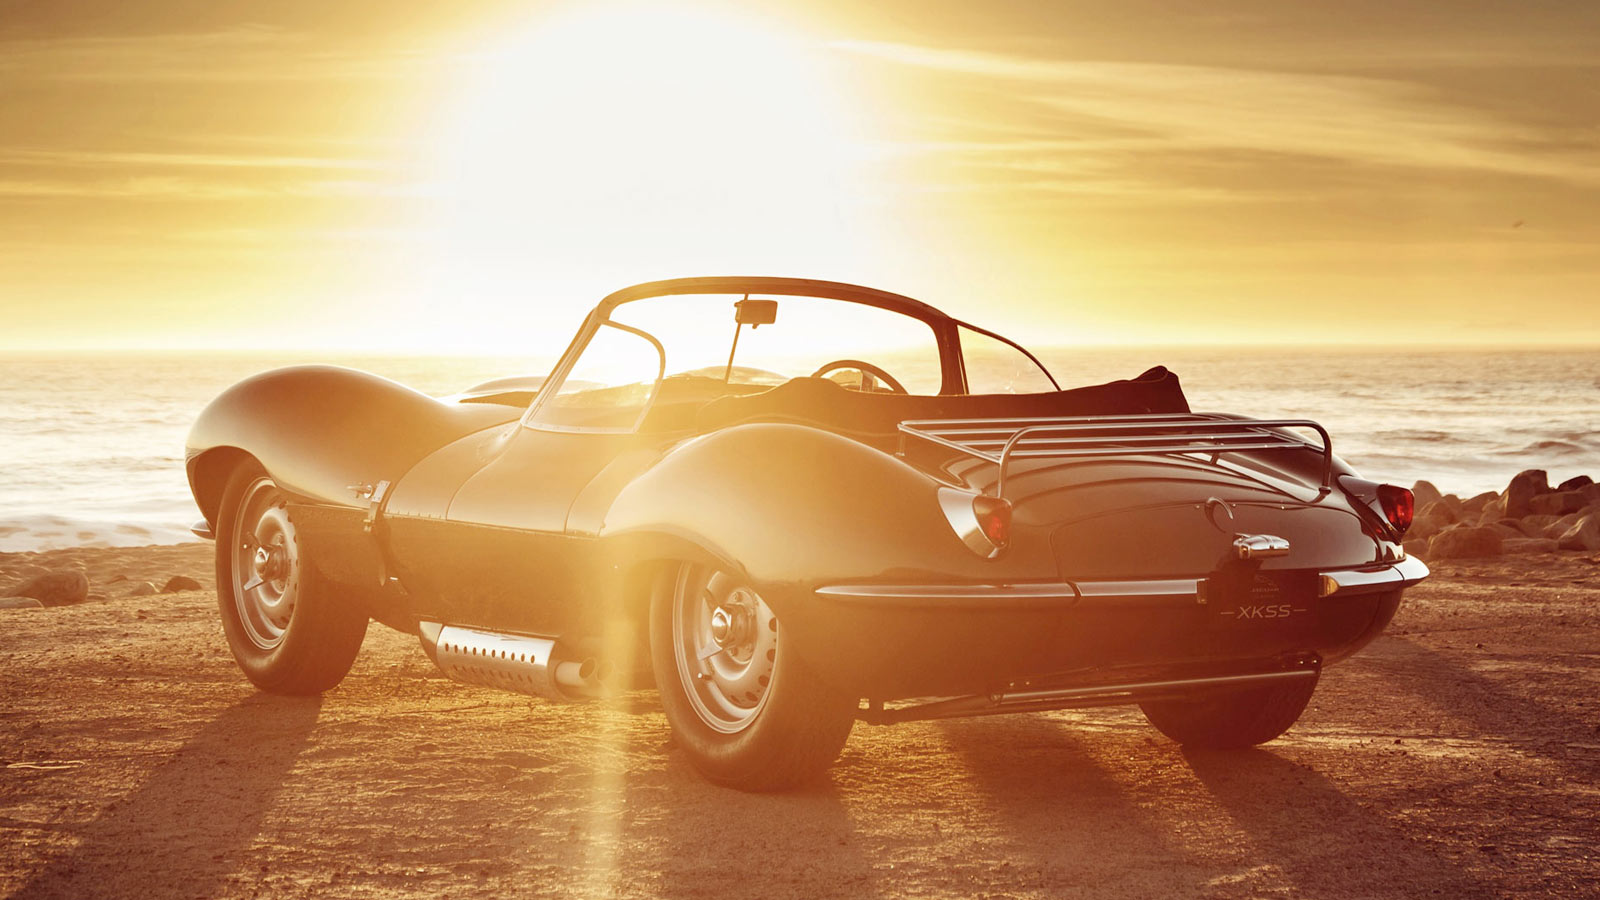 Jaguar XKSS facing the sea at sunset.